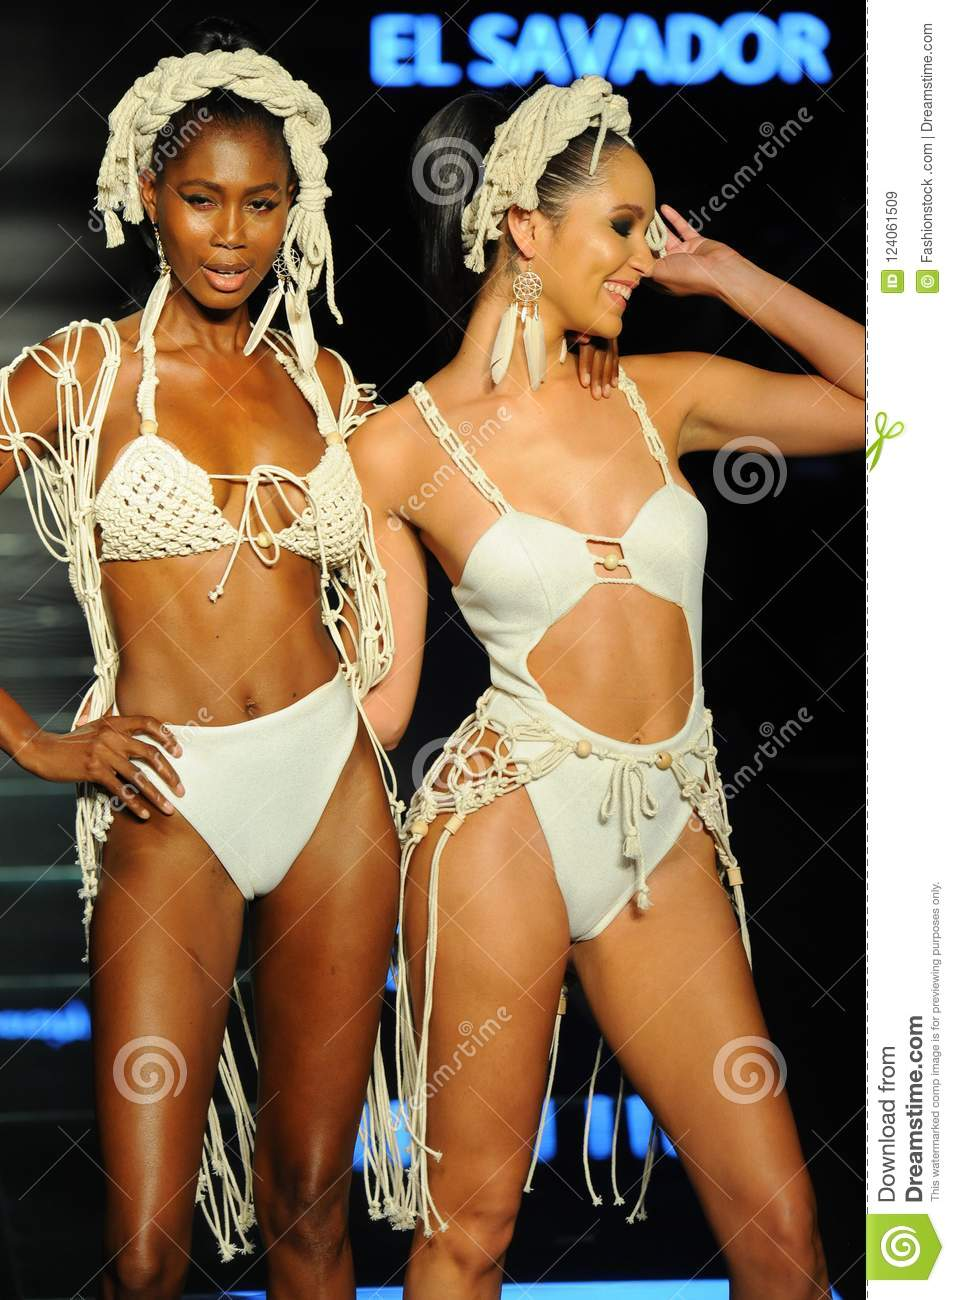 Models Wear Fashions By Design Students Of Miami International University Of Art And Design Editorial Stock Image Image Of Pretty Design 124061509